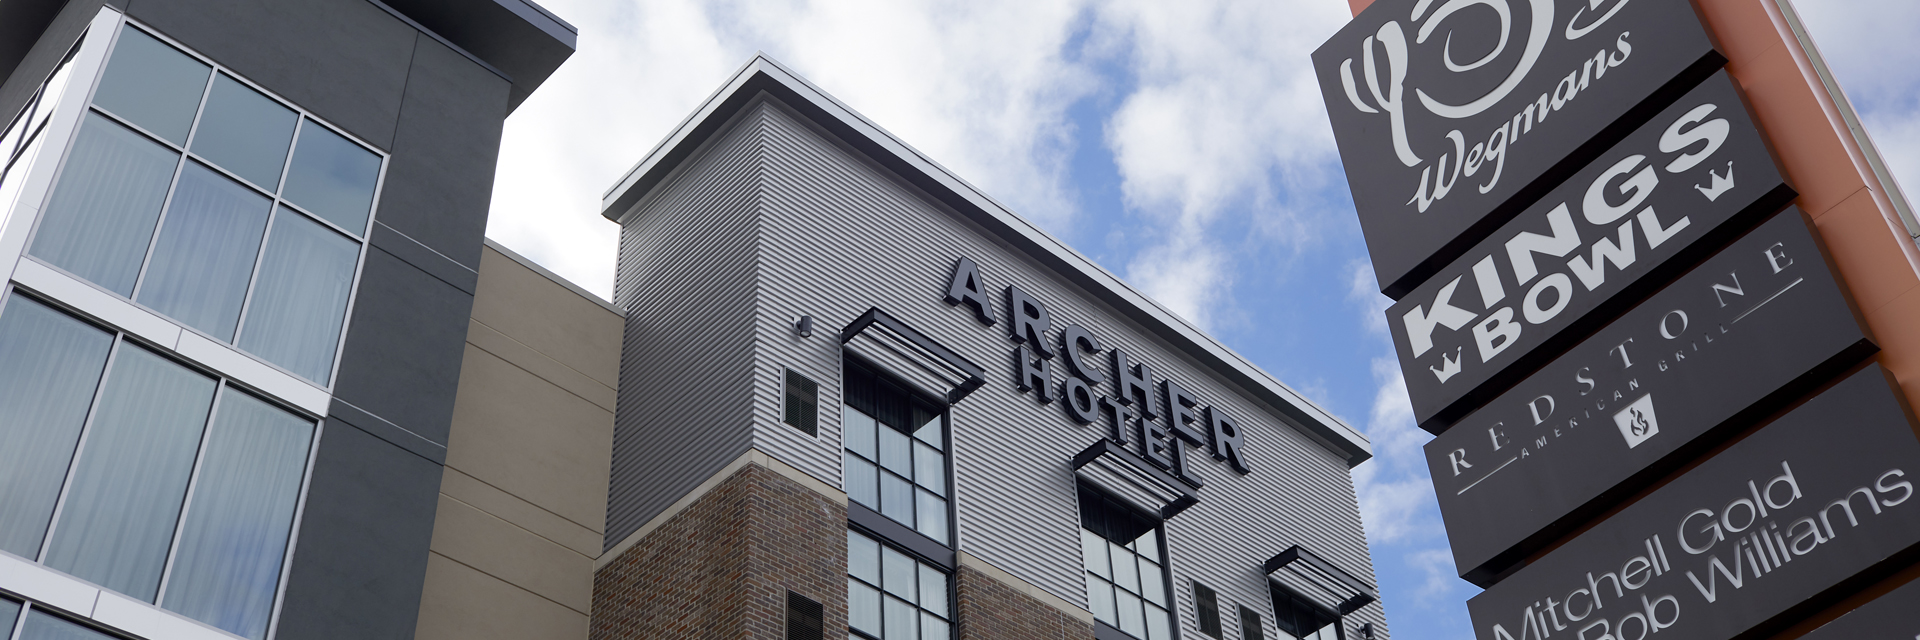 Family Fun In + Around Burlington | Archer Hotel Burlington